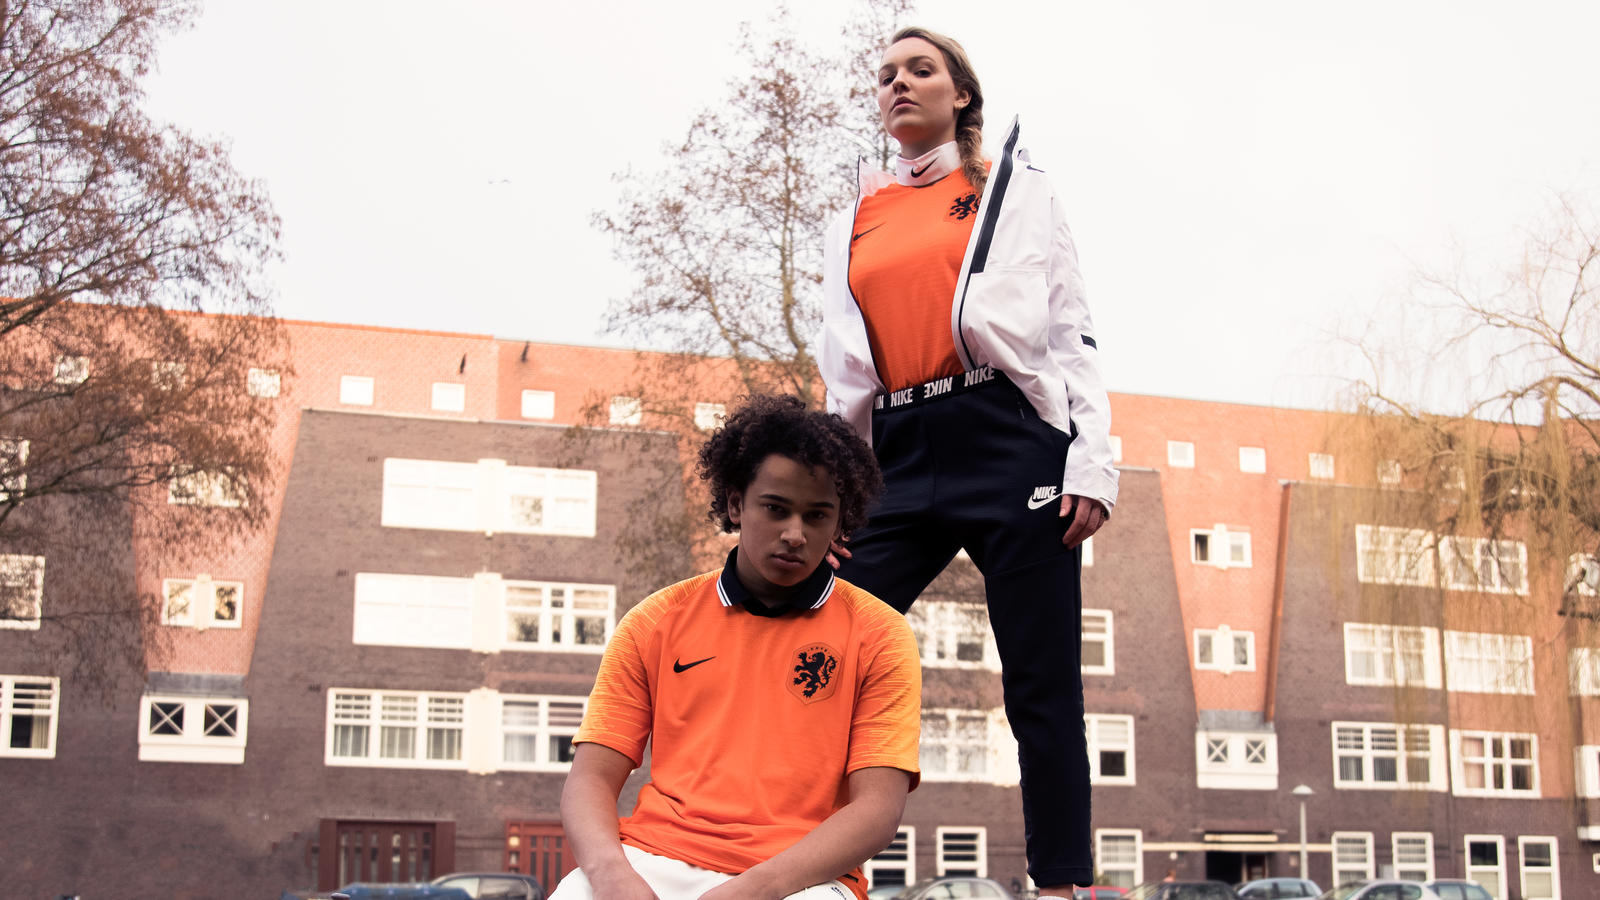 Hup Holland! The Netherland's 2018 Kit Pays Tribute to Total Football 4